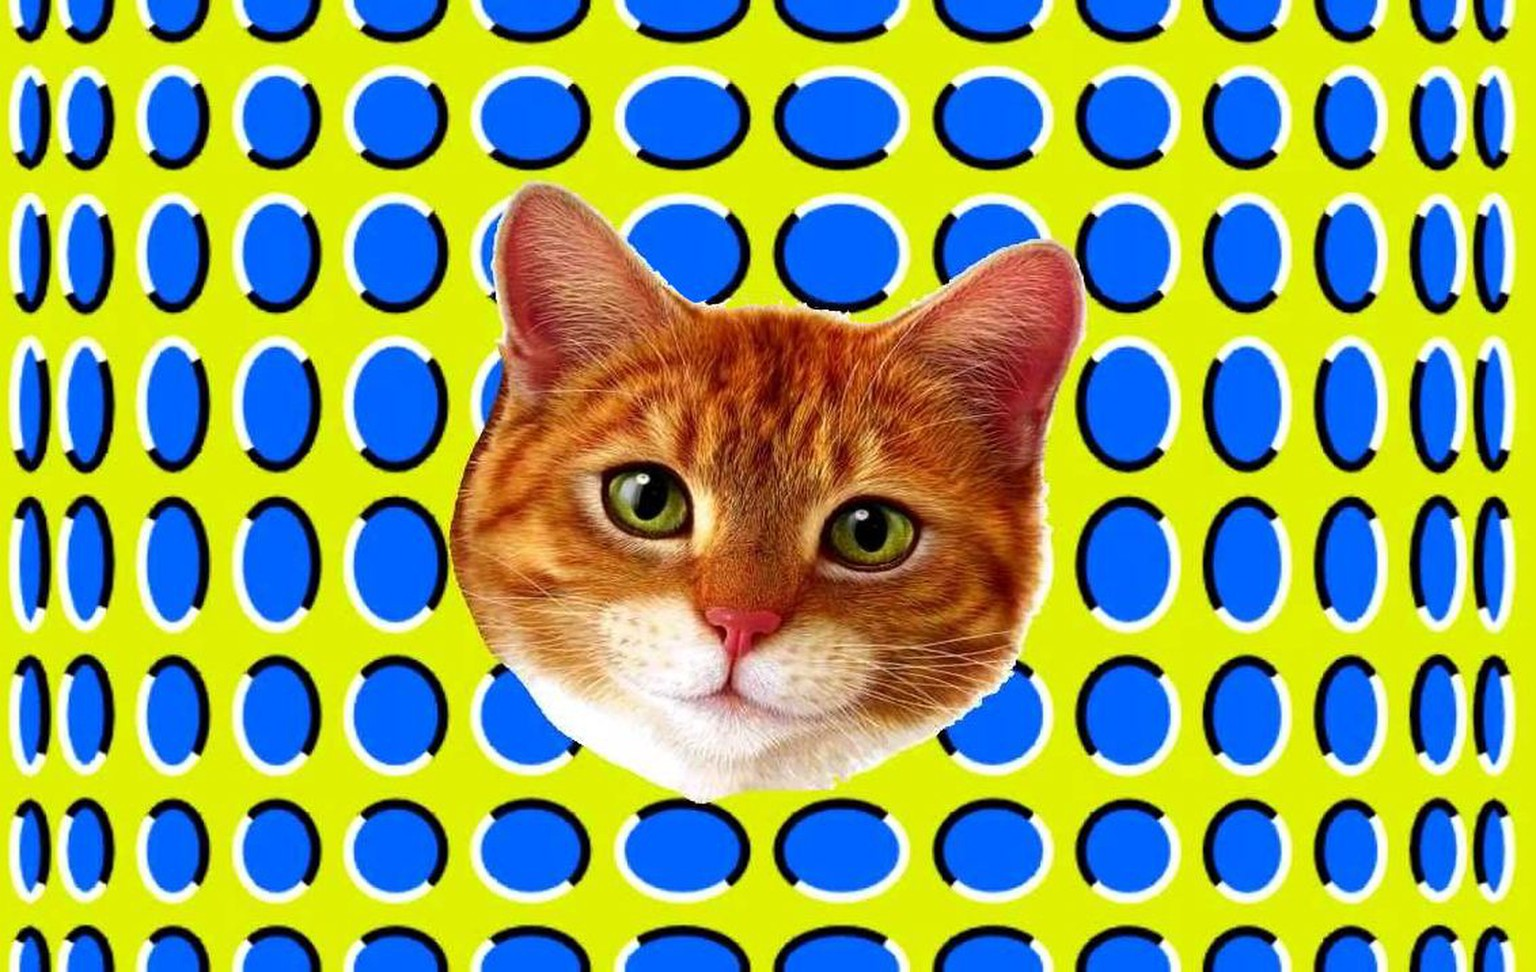 Optische Illusion Katze http://www.jackwild.com/sites/default/files/images/trippy-expanding-cat-mobile-casino-i-haz-the-happy-feels.jpg